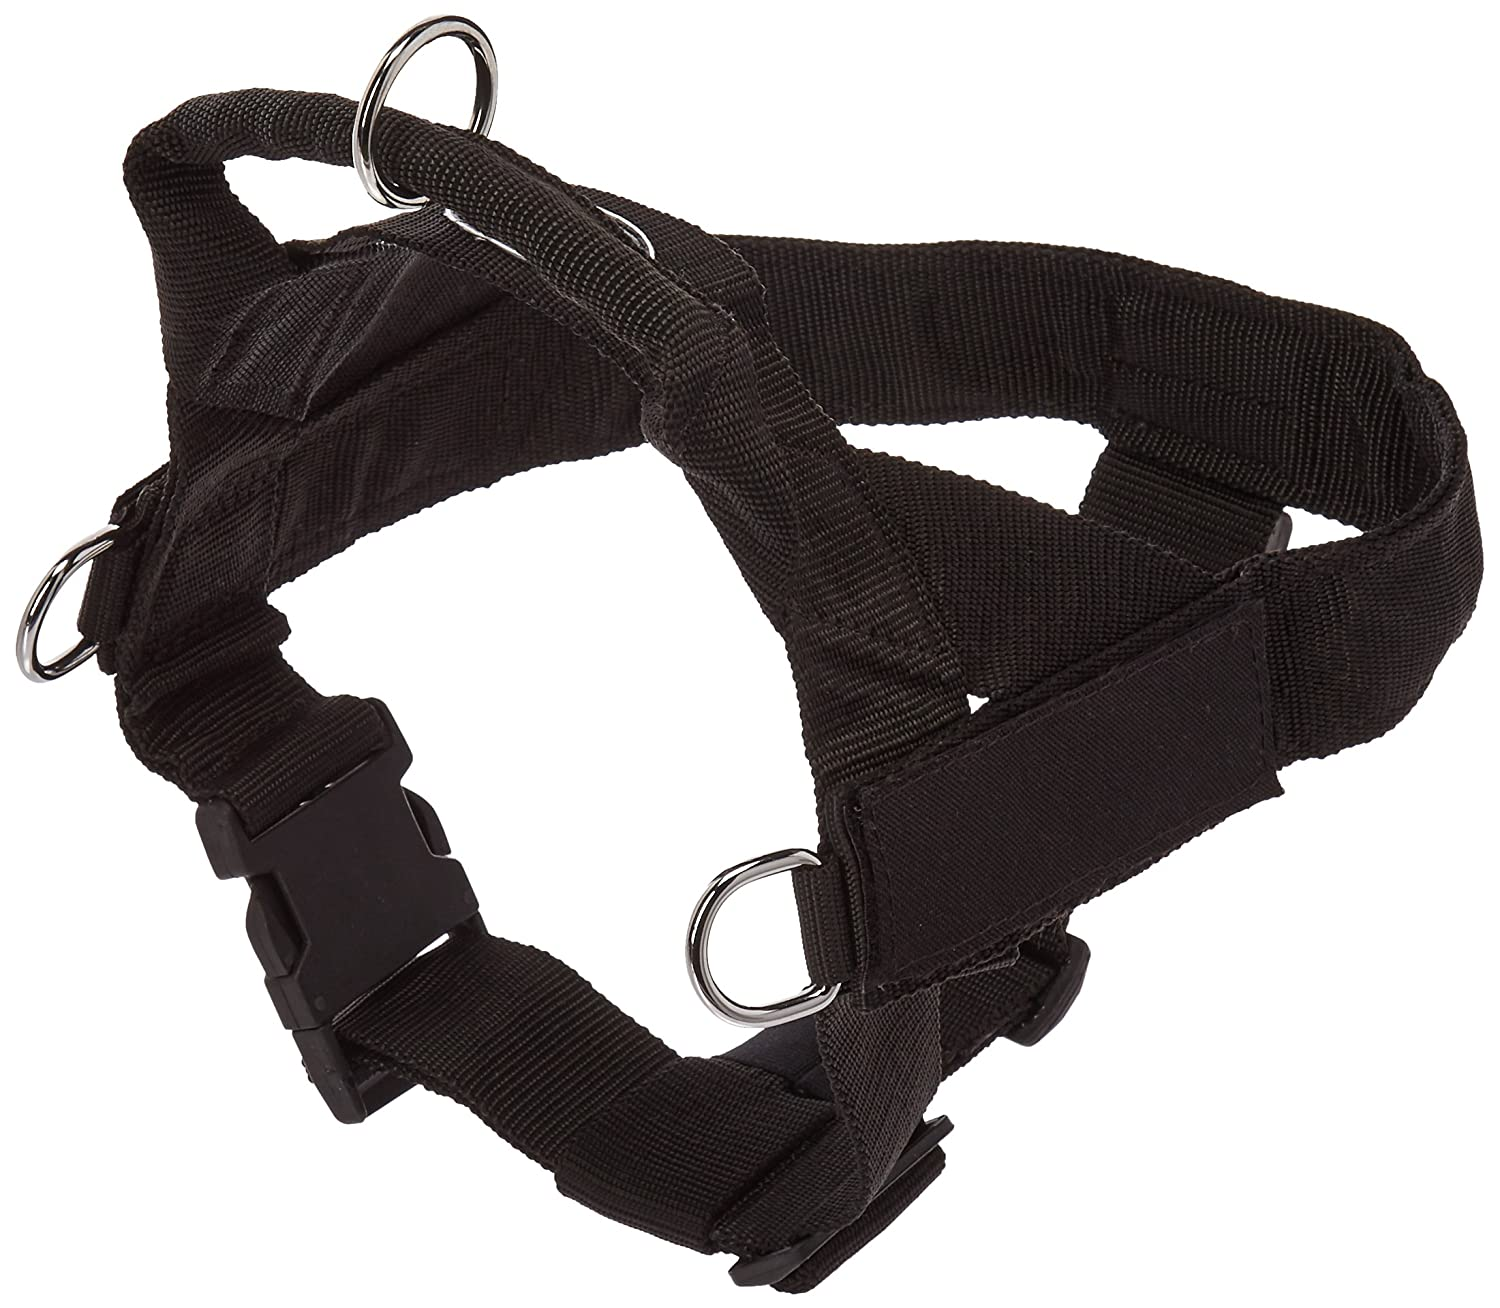 DT Universal Fun No Pull Dog Harness, Made in USA, Black, Medium, Fits Girth Size  26-Inch to 32-Inch